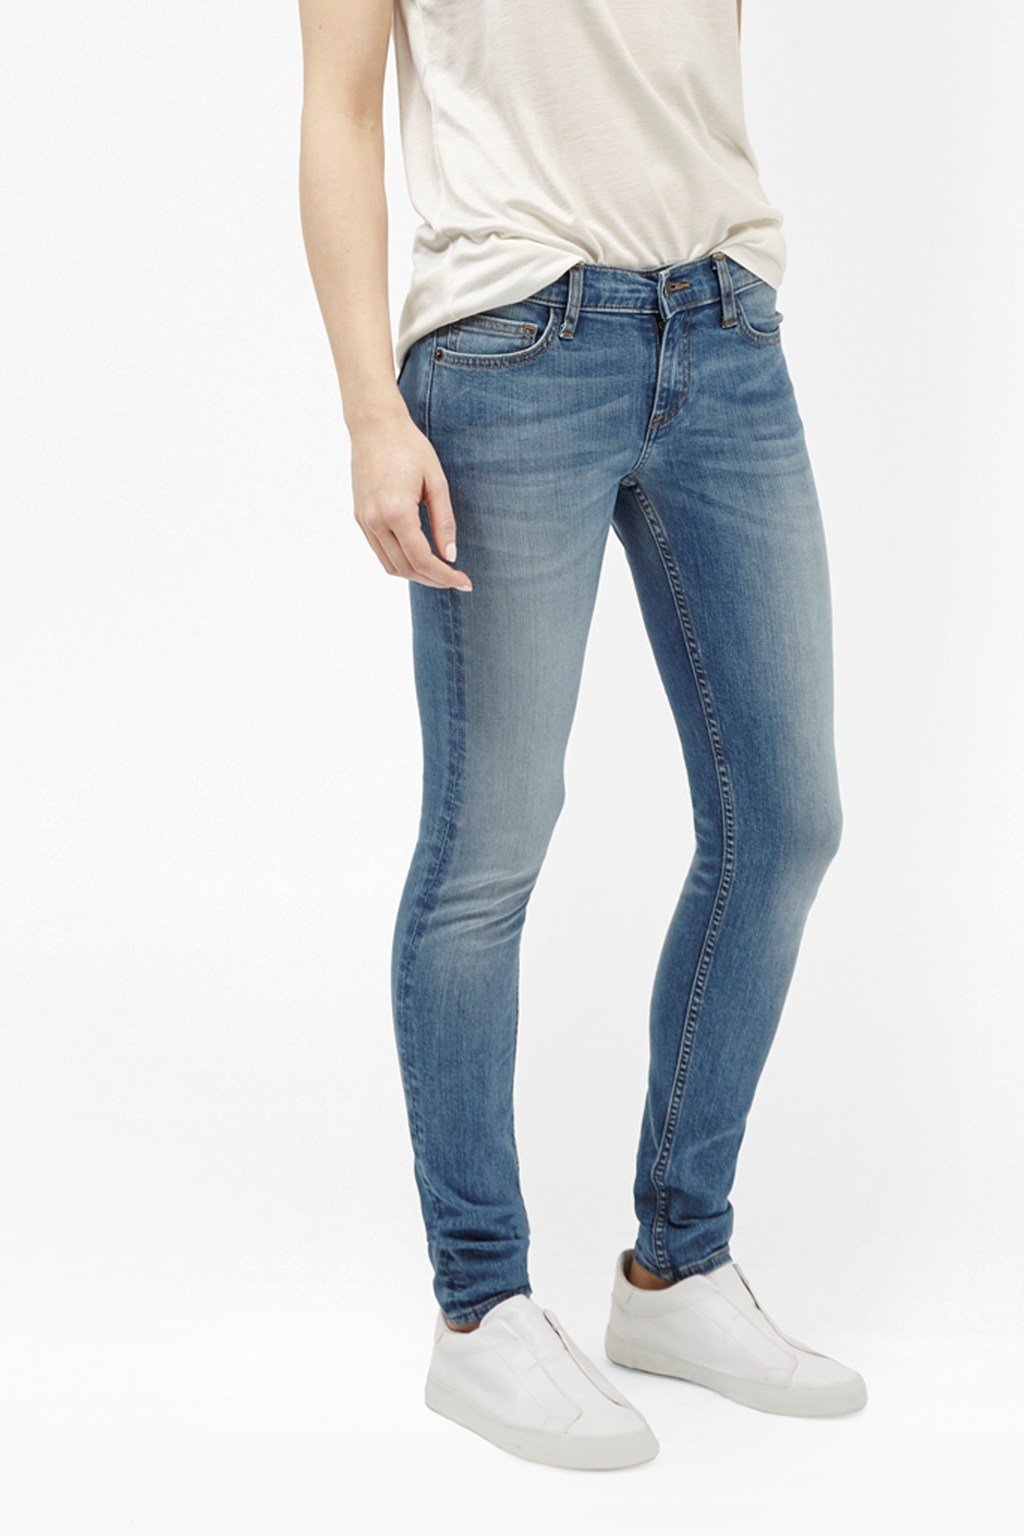 Tiffany Skin Tight Jeans Bleach - style: skinny leg; length: standard; pattern: plain; waist: mid/regular rise; predominant colour: denim; occasions: casual, creative work; fibres: cotton - stretch; jeans detail: shading down centre of thigh; texture group: denim; pattern type: fabric; season: s/s 2016; wardrobe: basic